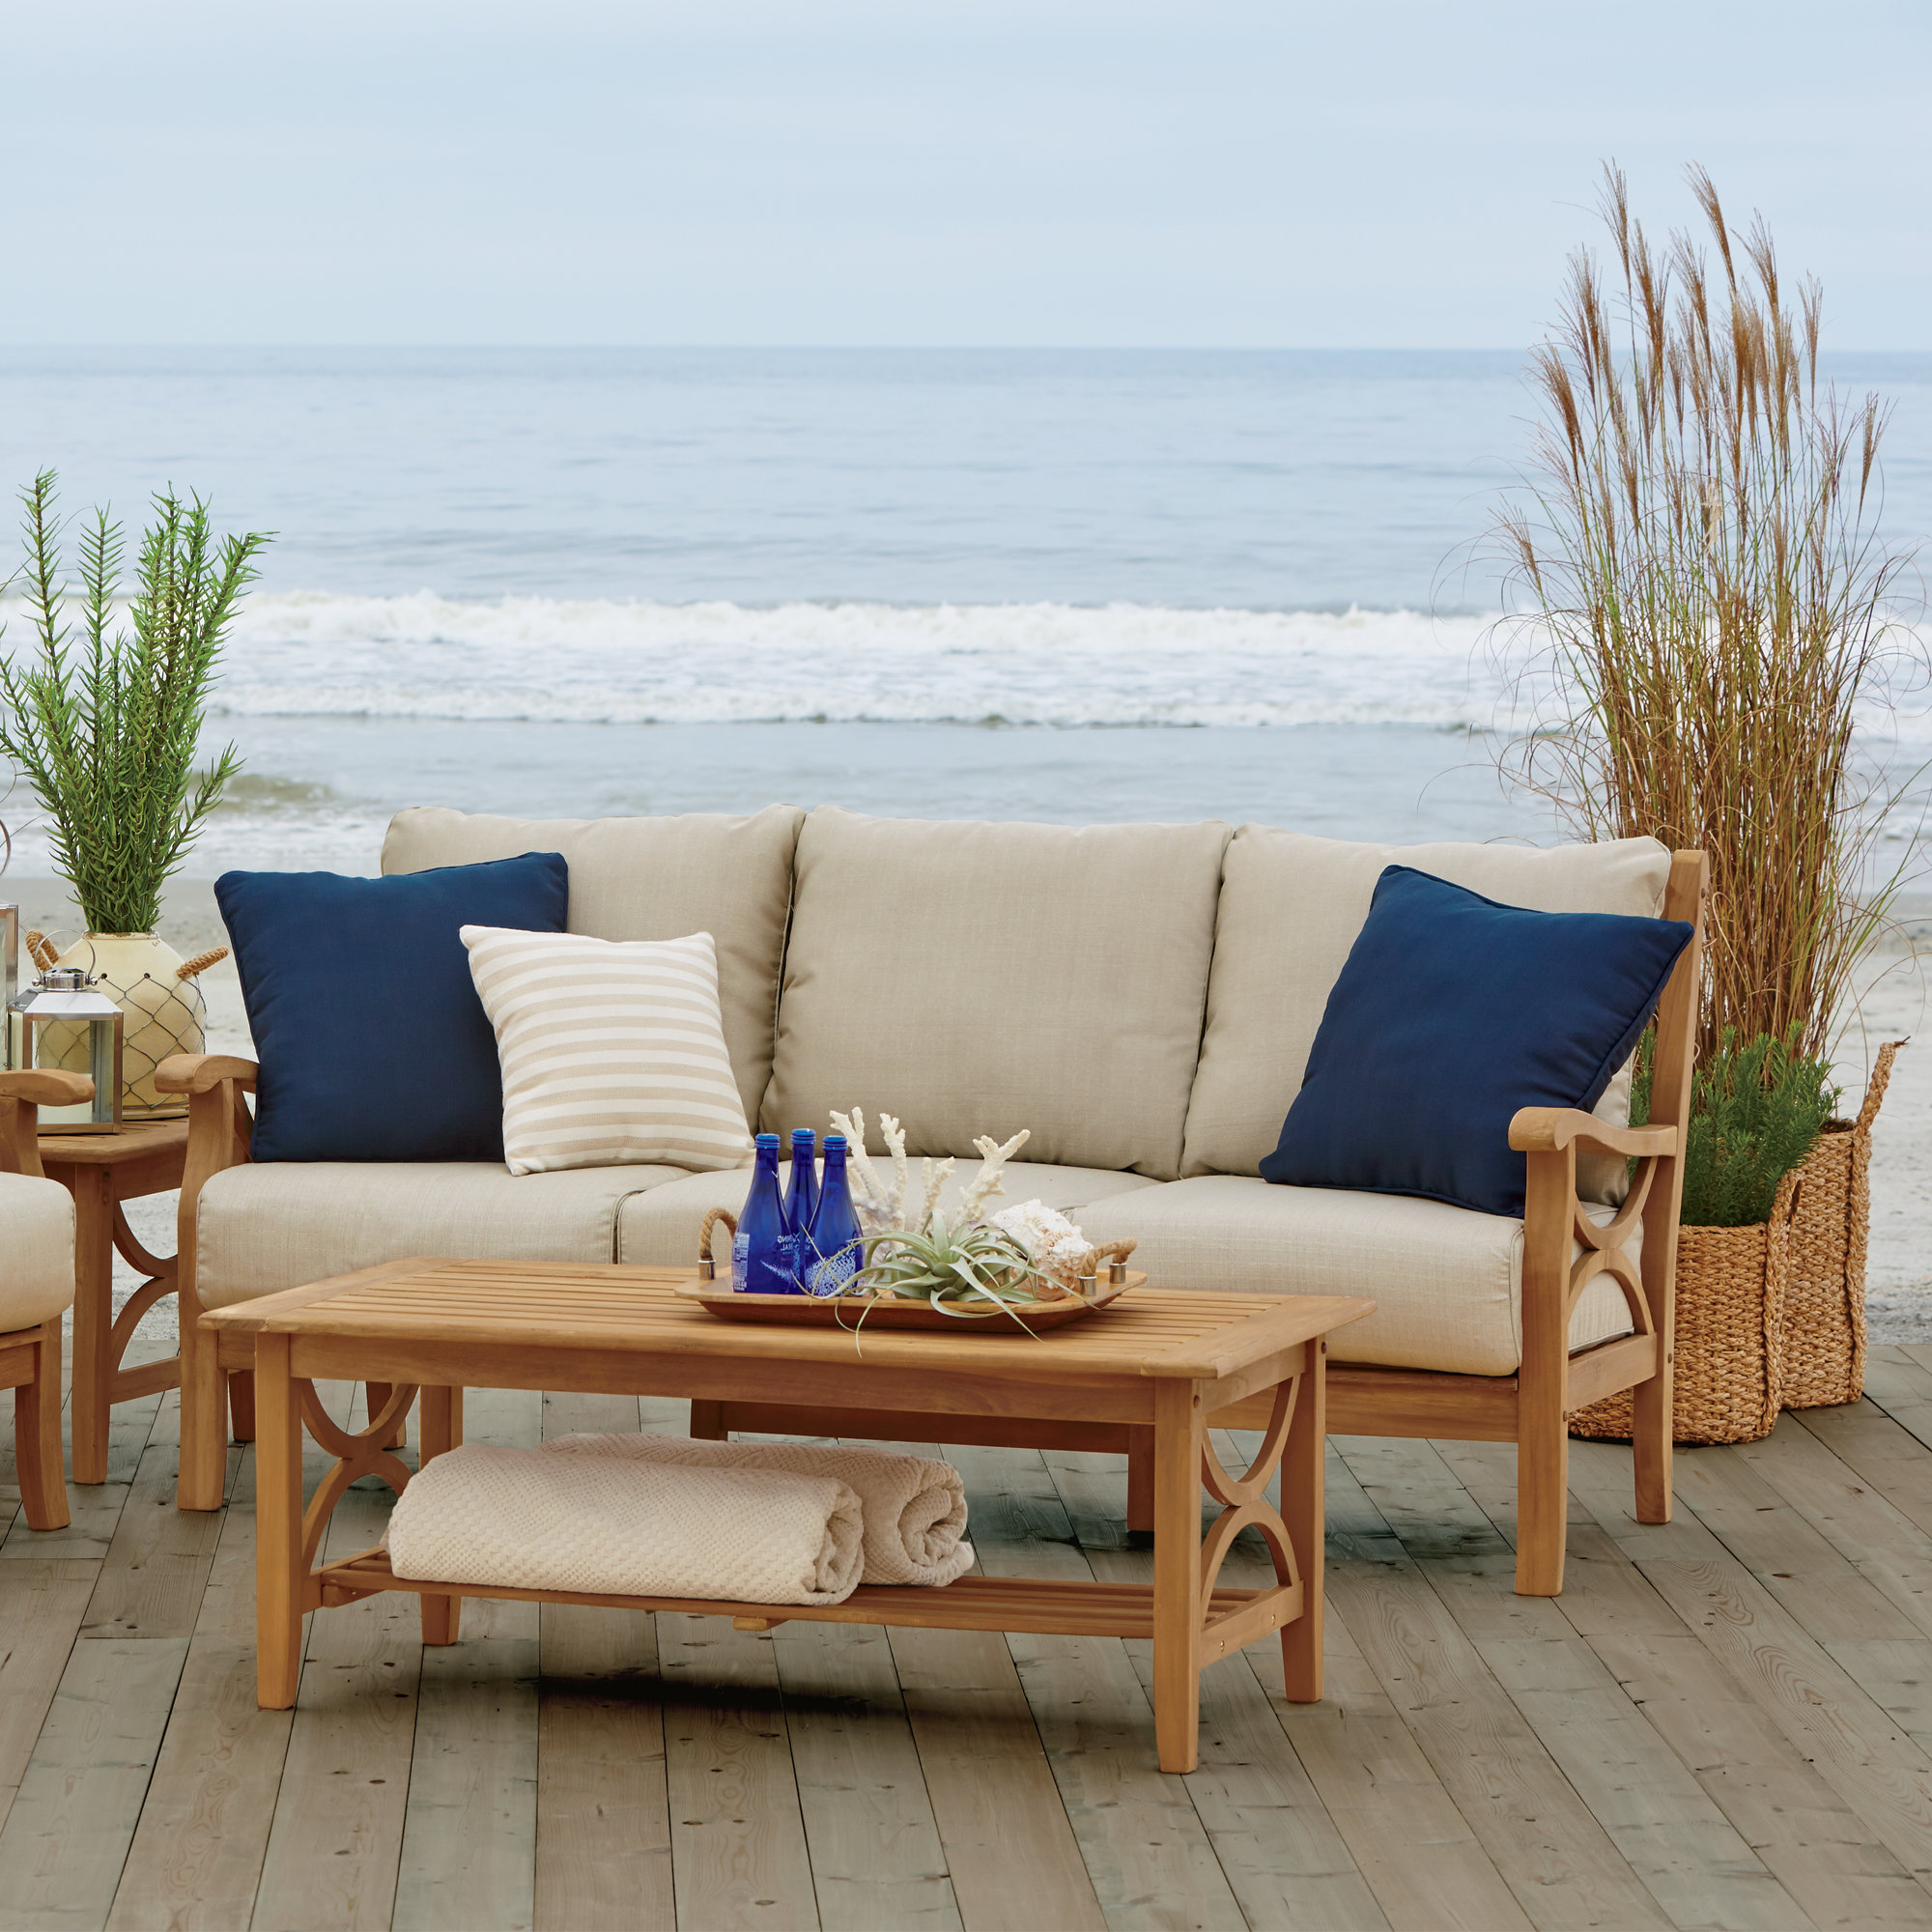 Most Up To Date Brunswick Teak Patio Sofa With Cushions Intended For Ellanti Teak Patio Daybeds With Cushions (View 13 of 20)